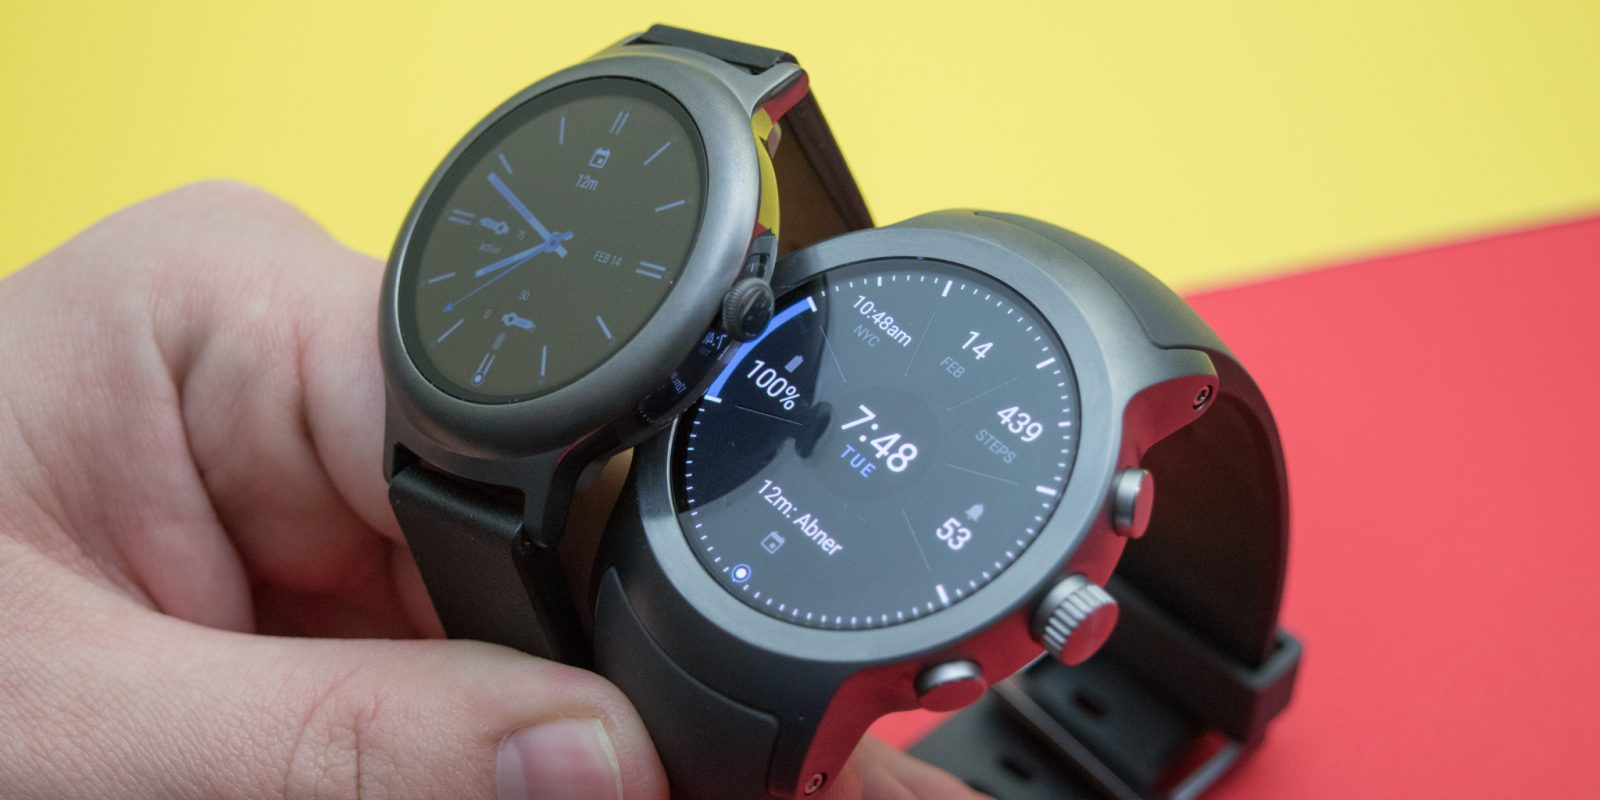 Here's the list of Android Wear watches being updated to 8.0 Oreo